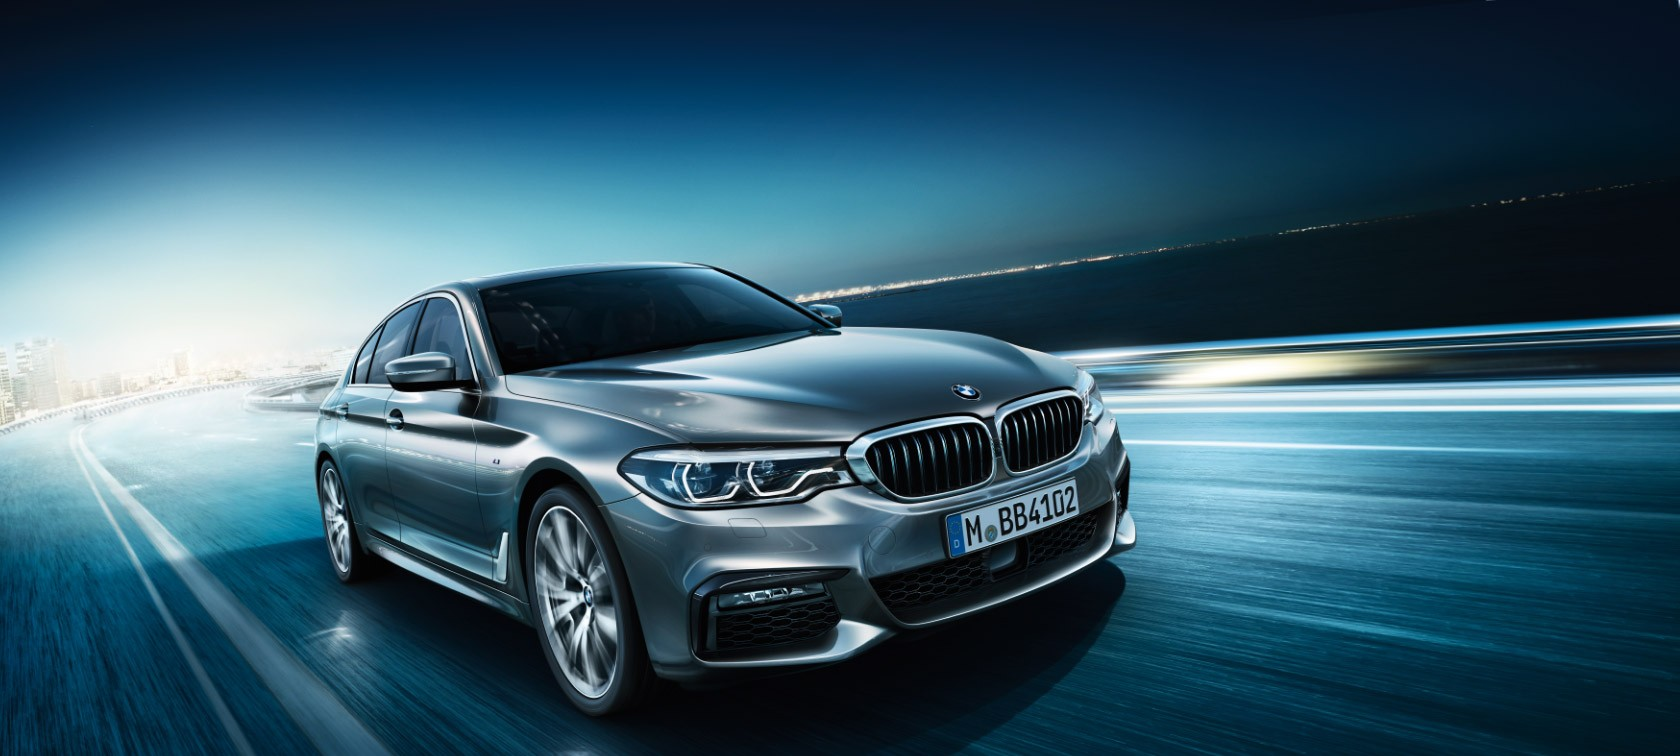 The All New Bmw 5 Series Is Revealed Dublin Joe Duffy Bmw